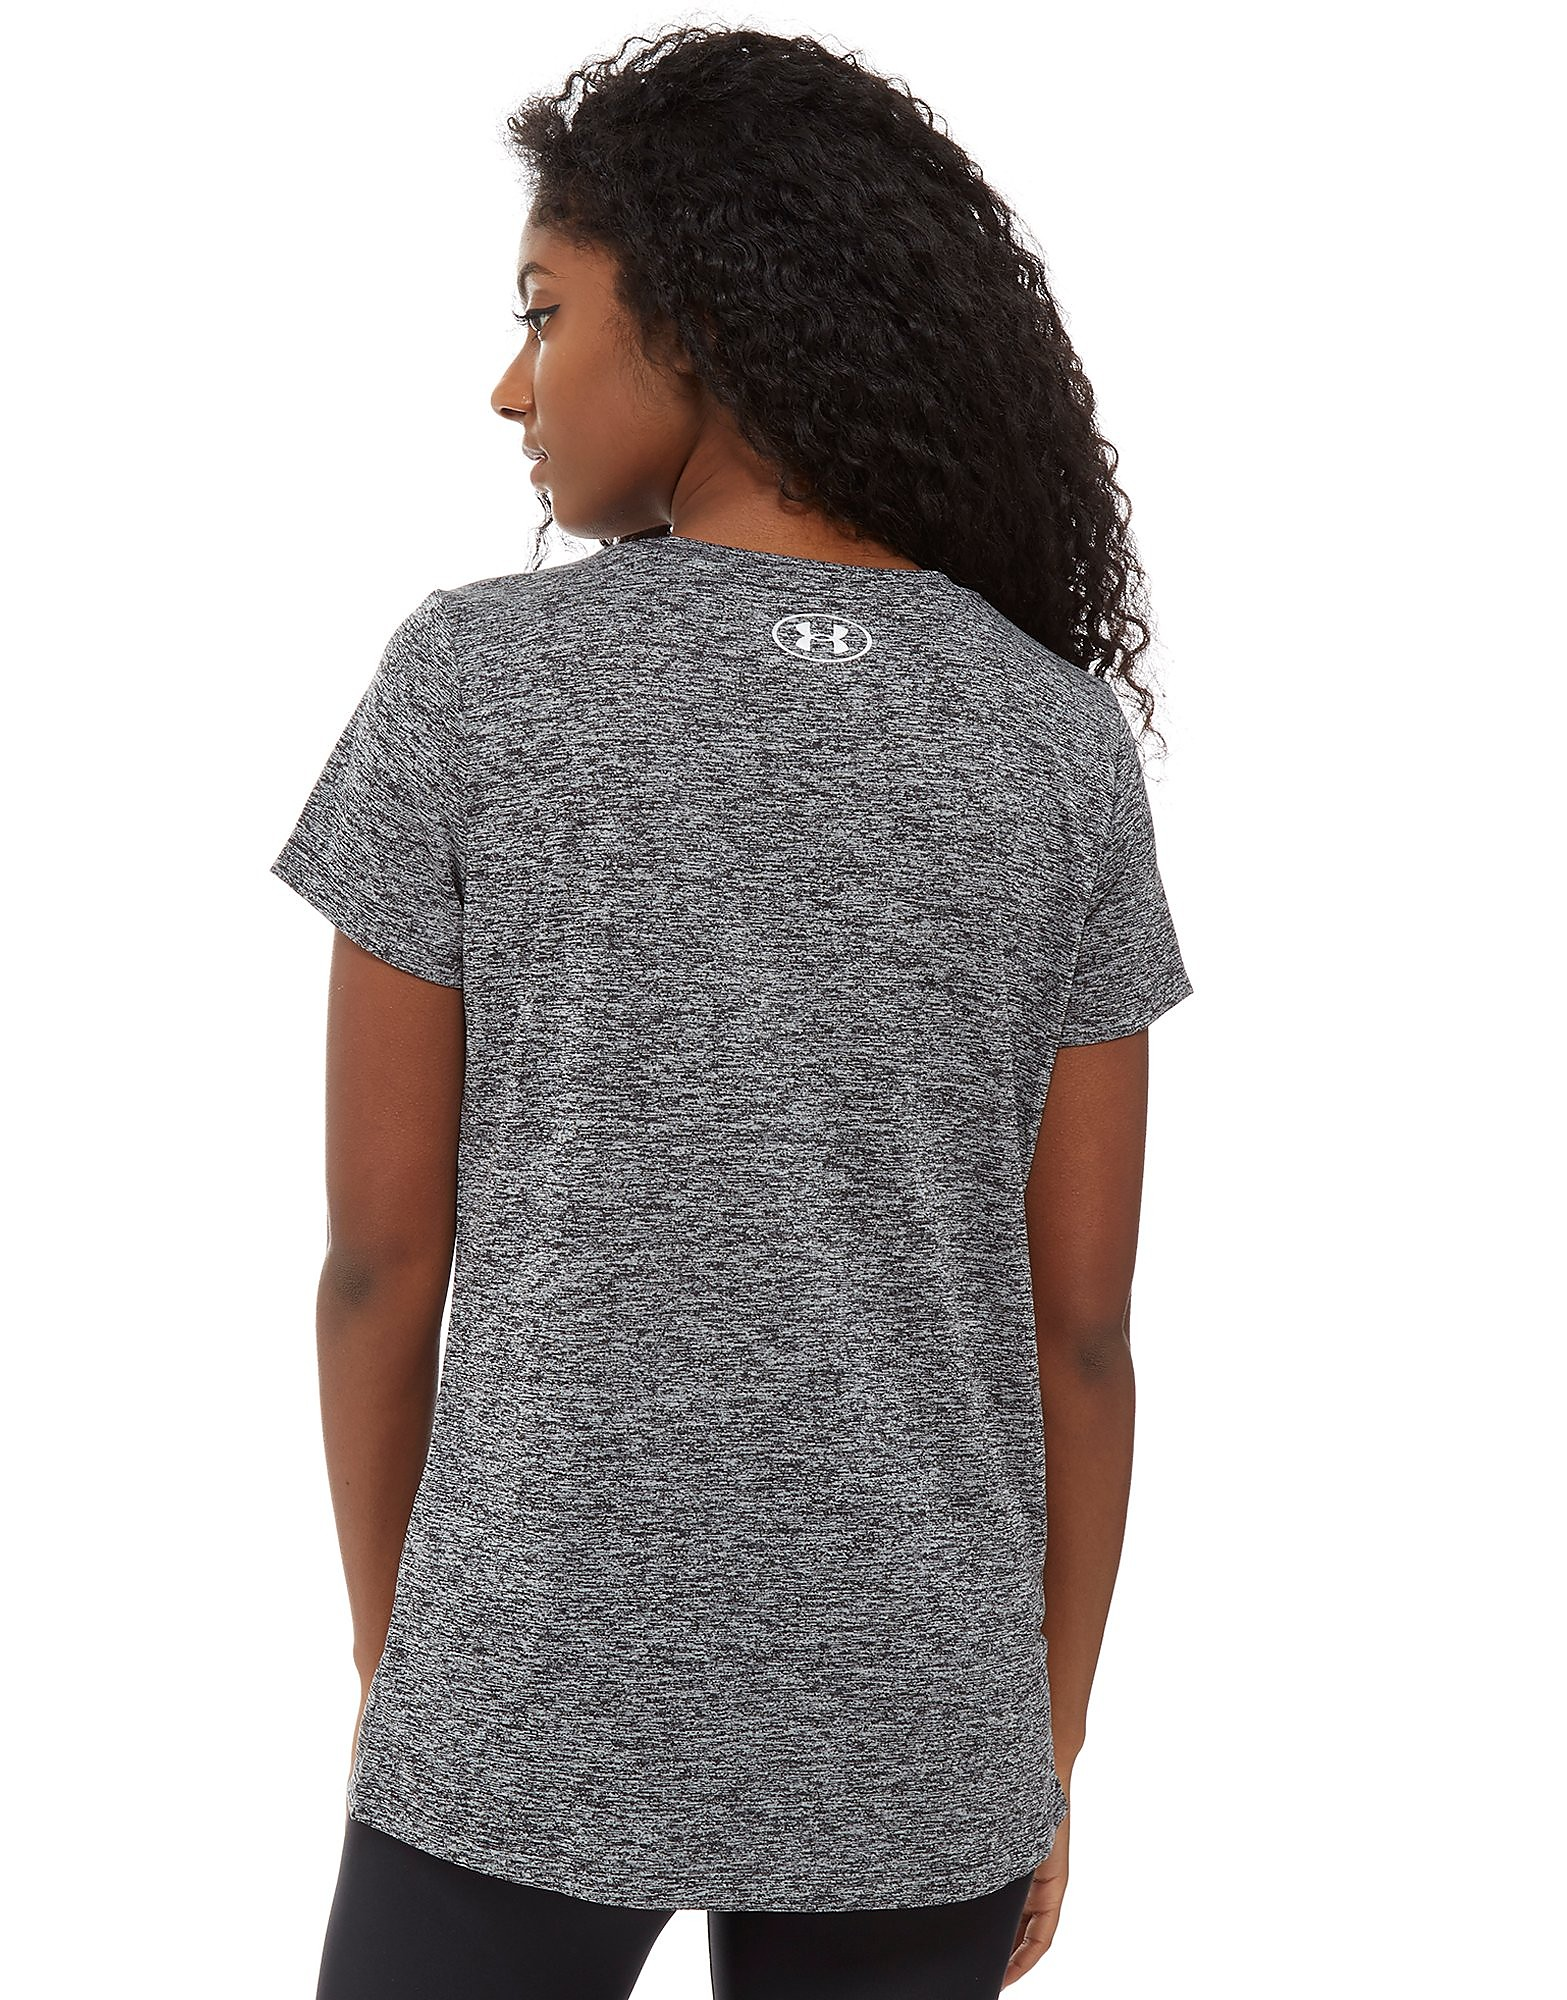 Under Armour Tech Twist Graphic Women's T-Shirt